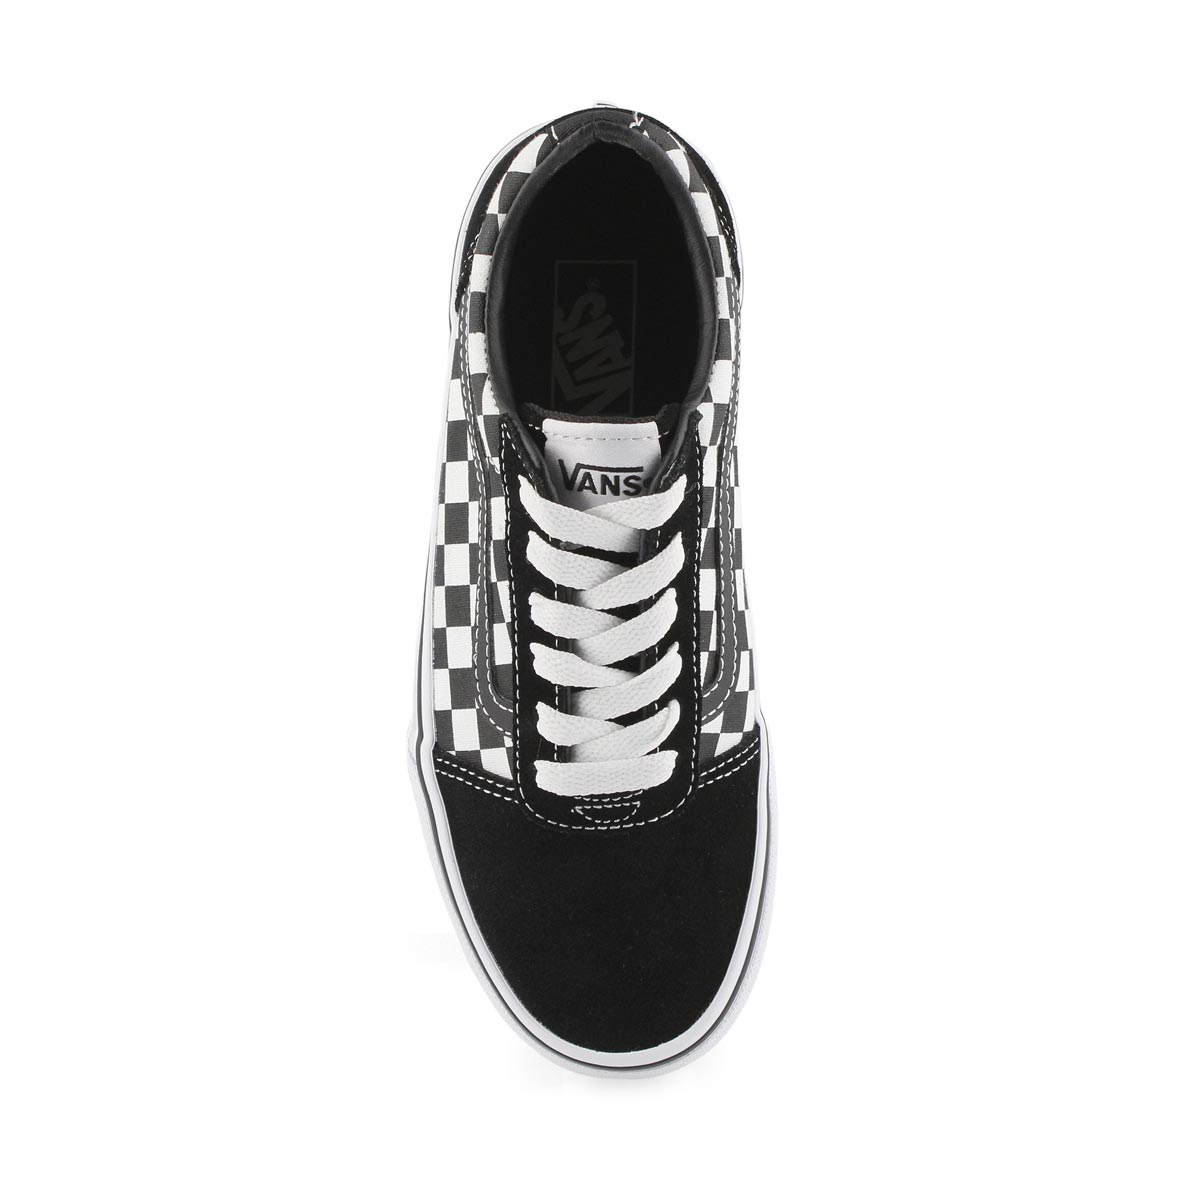 Bys Ward blk/wht chkr lace up sneaker